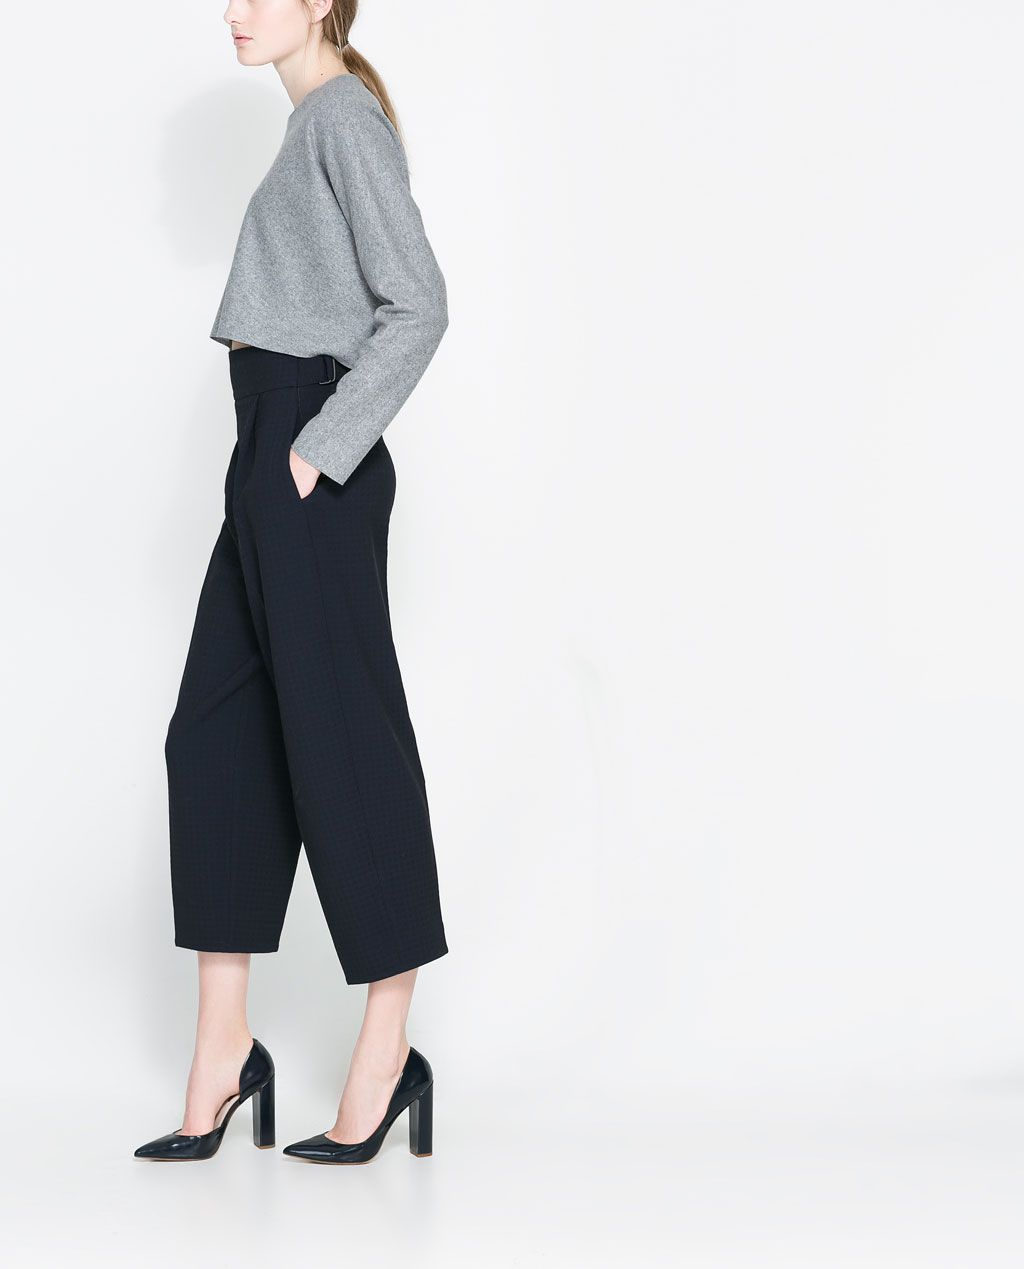 ZARA - NEW COLLECTION - JACQUARD TROUSERS WITH BUCKLE